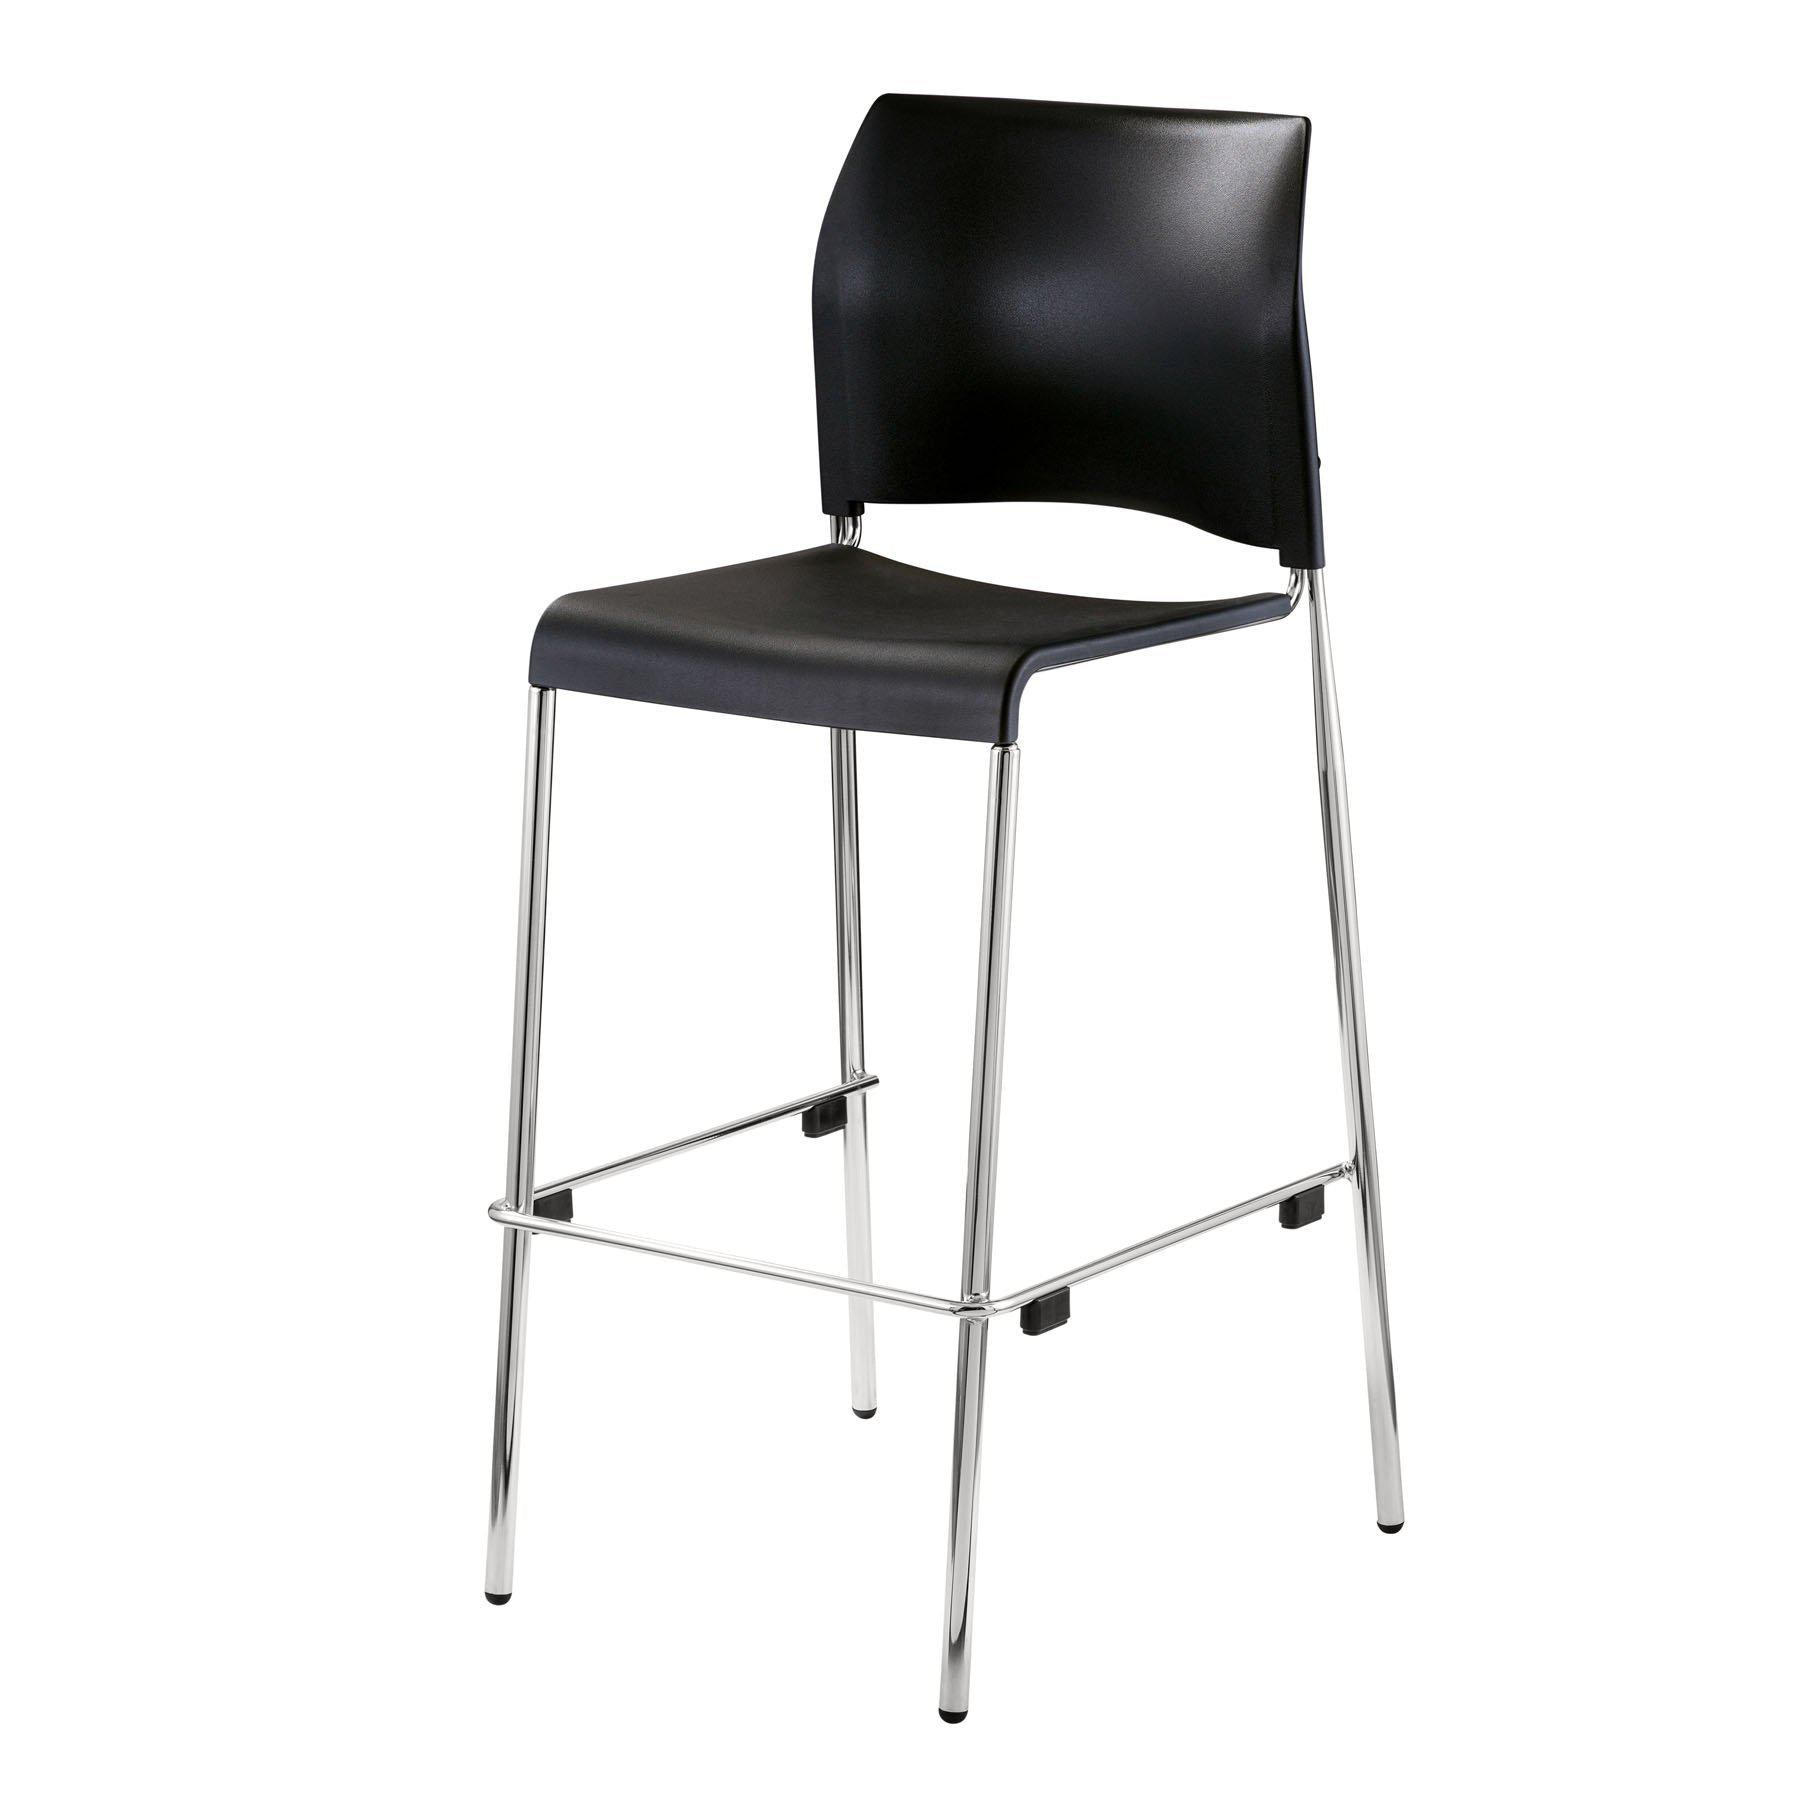 Cafetorium Bar Stool, Black Plastic Seat, Chrome Frame-Stools-